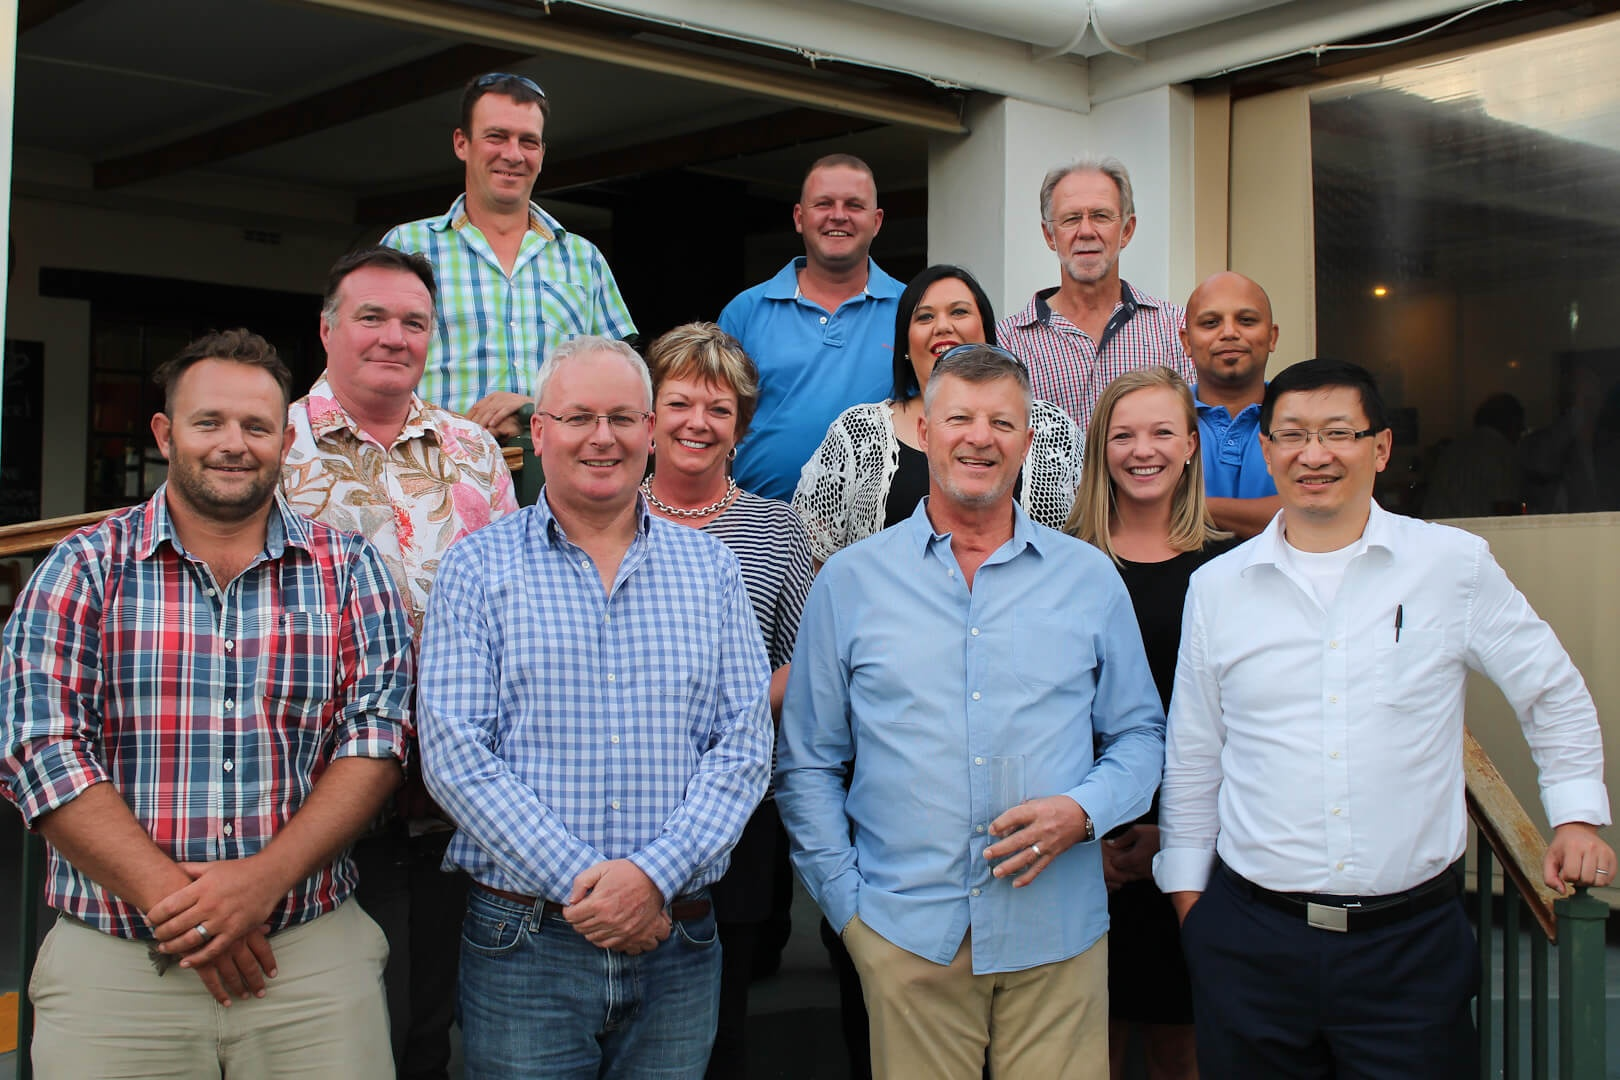 Cape Dried Fruit Packers Management and Business Partners from Australia all gathered under a Karoo sunset around a traditional South African Meal at the Montagu Bistro on Tuesday 26 January 2016.